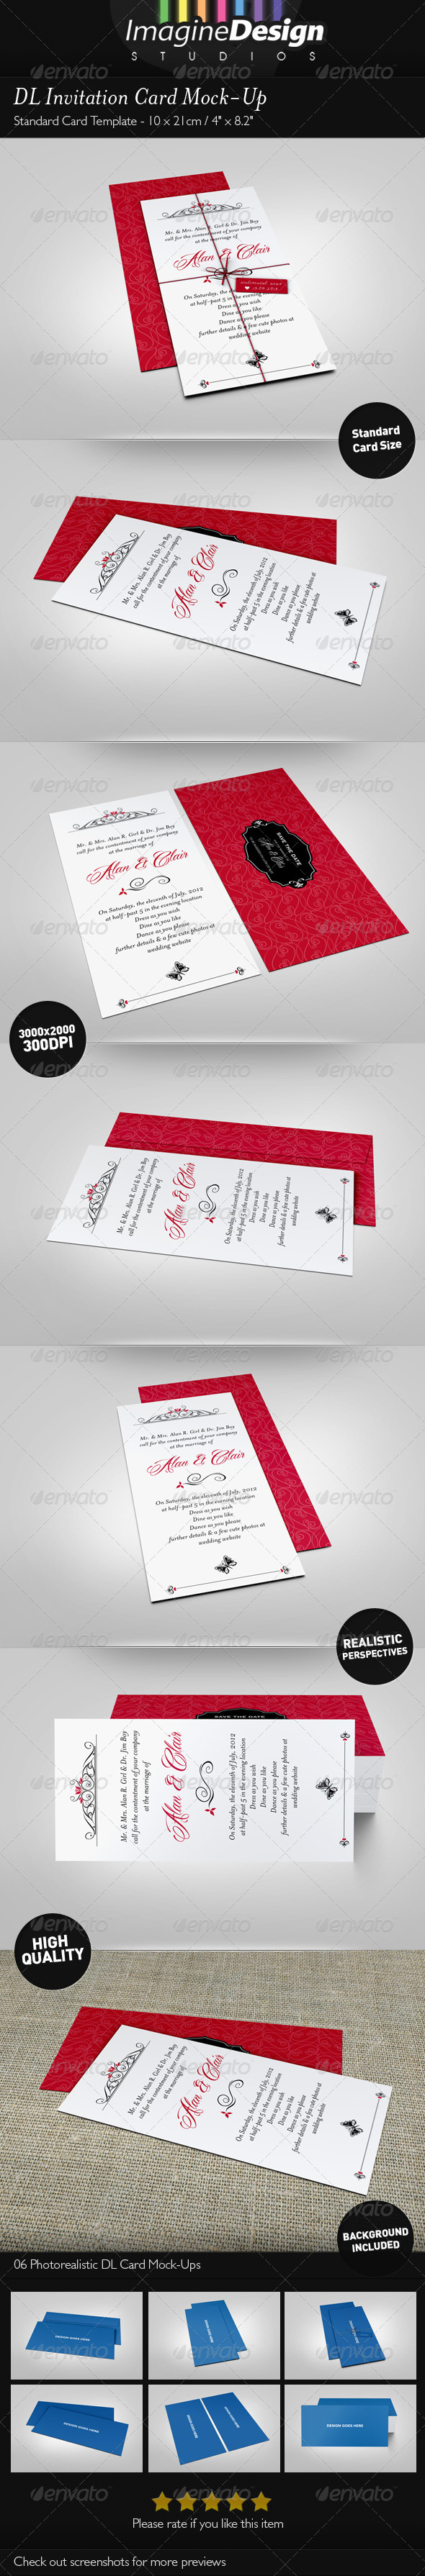 DL Invitation Card Mock-Up - Miscellaneous Print